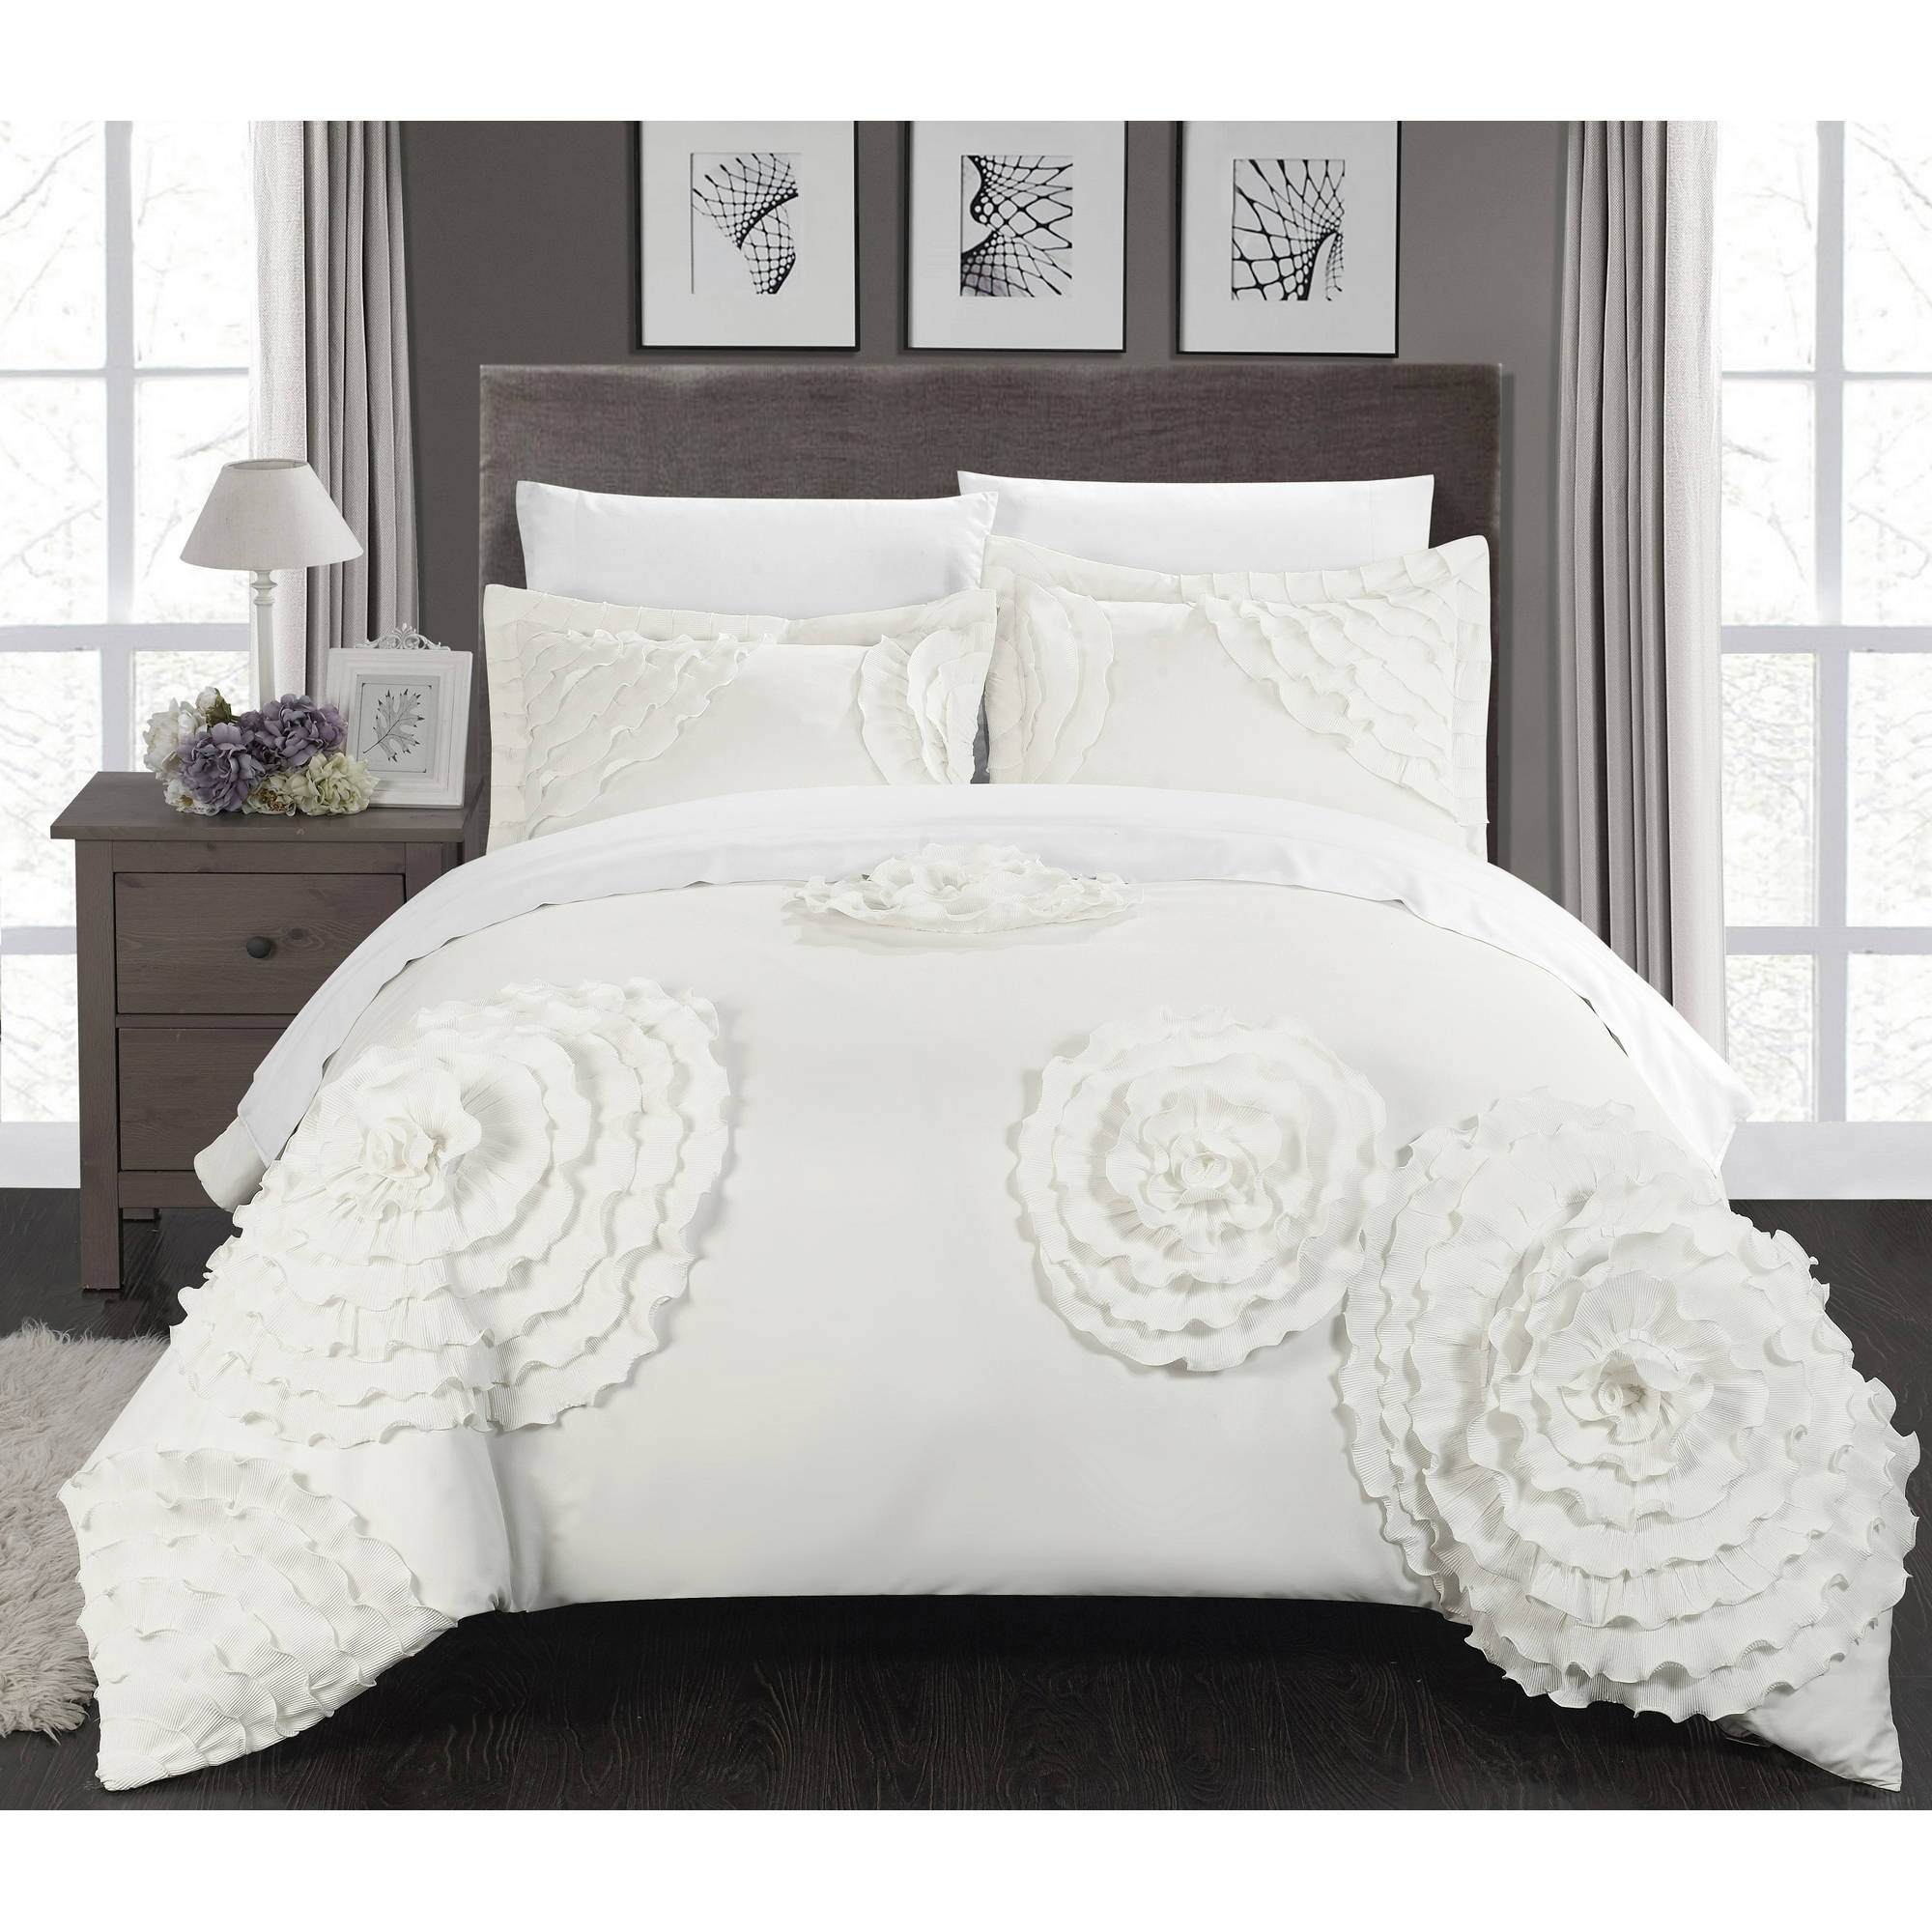 Duvet And Comforter Sets Marissa 3 Piece Duvet Cover Set